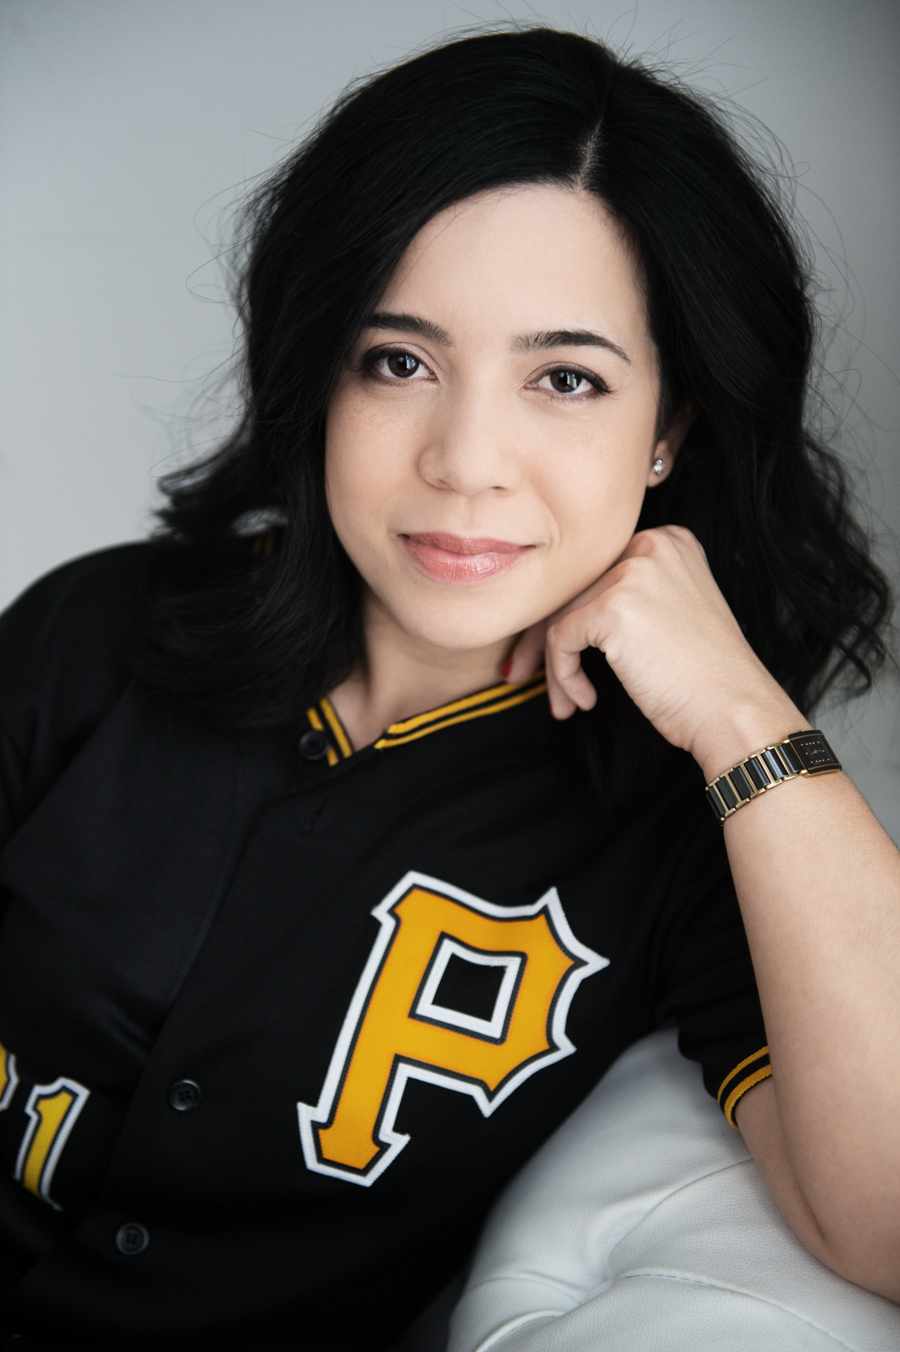 Pittsburgh Portrait Photographer Specializing in Women-1